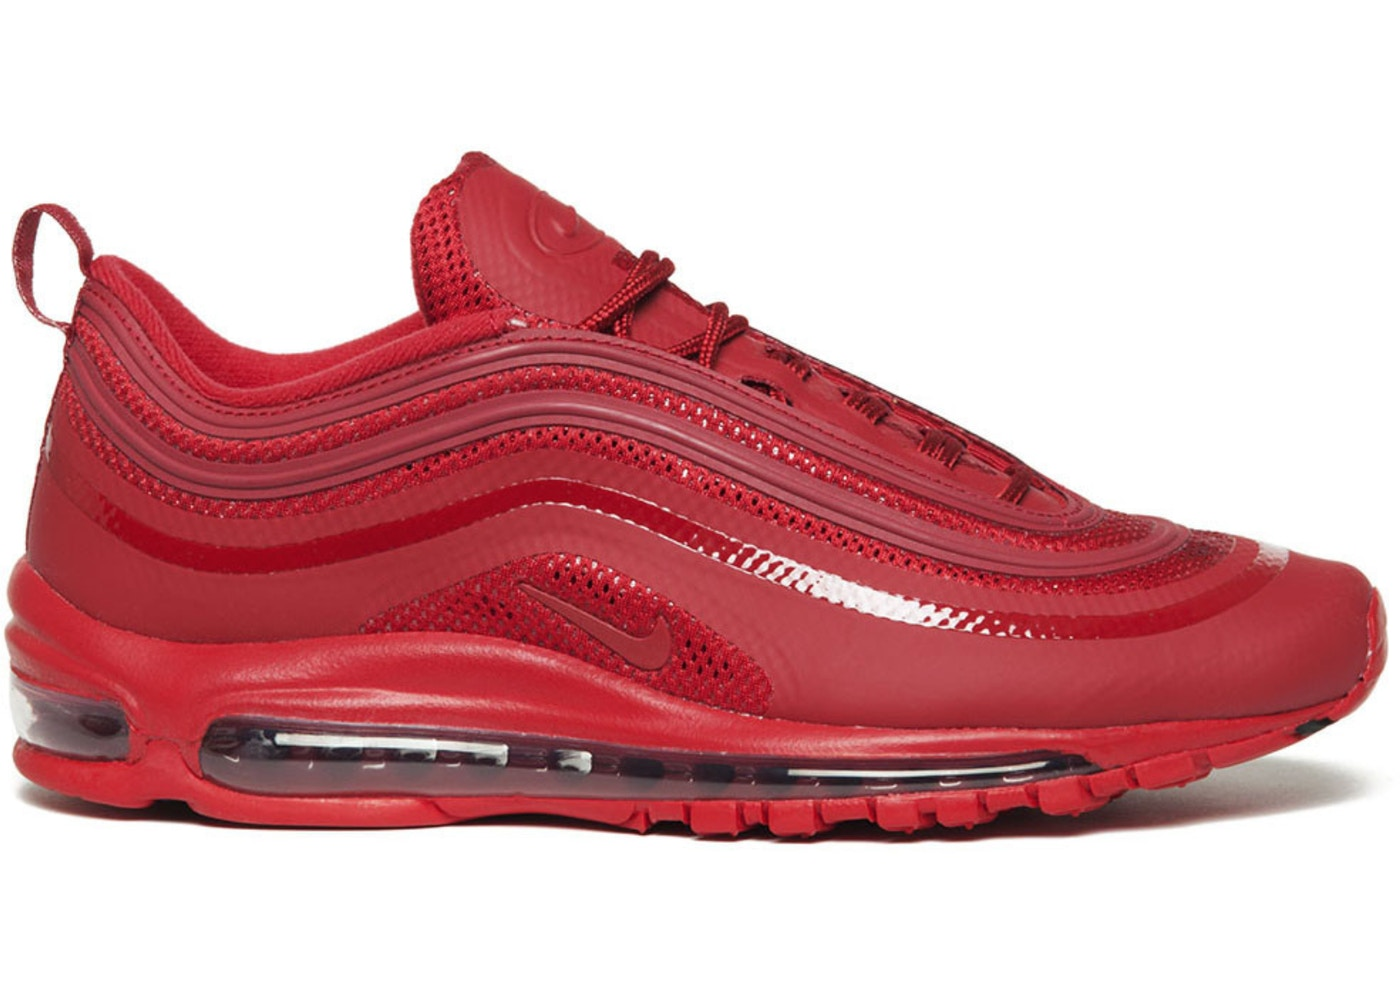 new product 746c6 9c225 Air Max 97 Hyperfuse Gym Red Nike ...